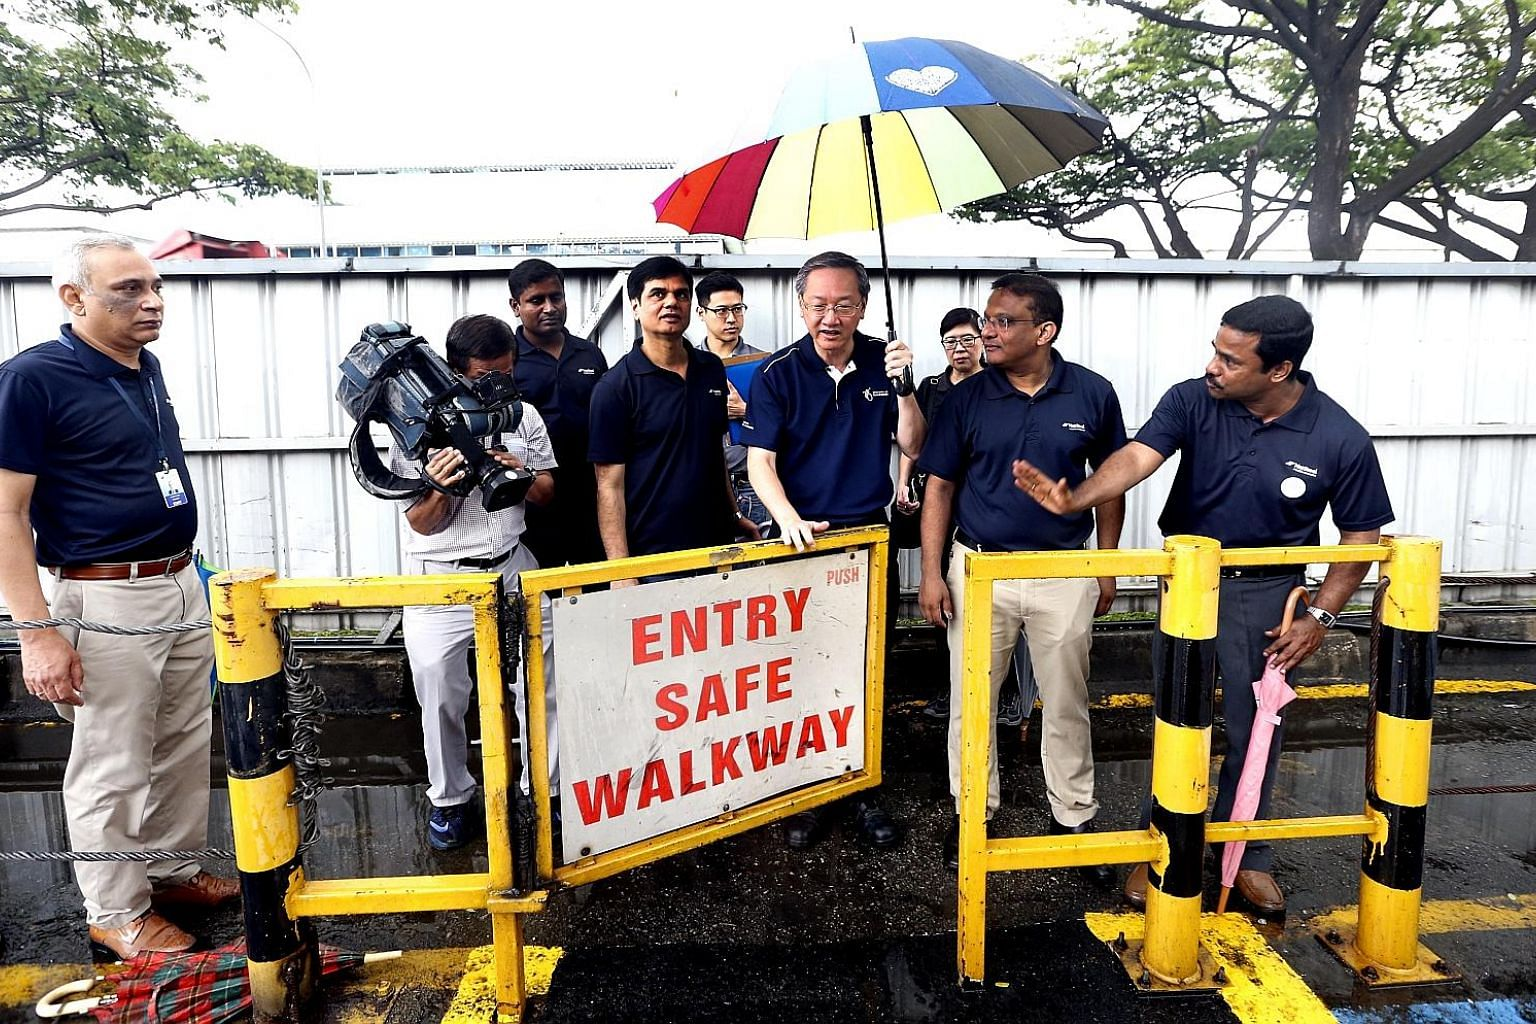 Minister of State for Manpower Sam Tan looking at a pedestrian safety door at NatSteel yesterday, during the launch of the Drive Safe, Work Safe campaign.